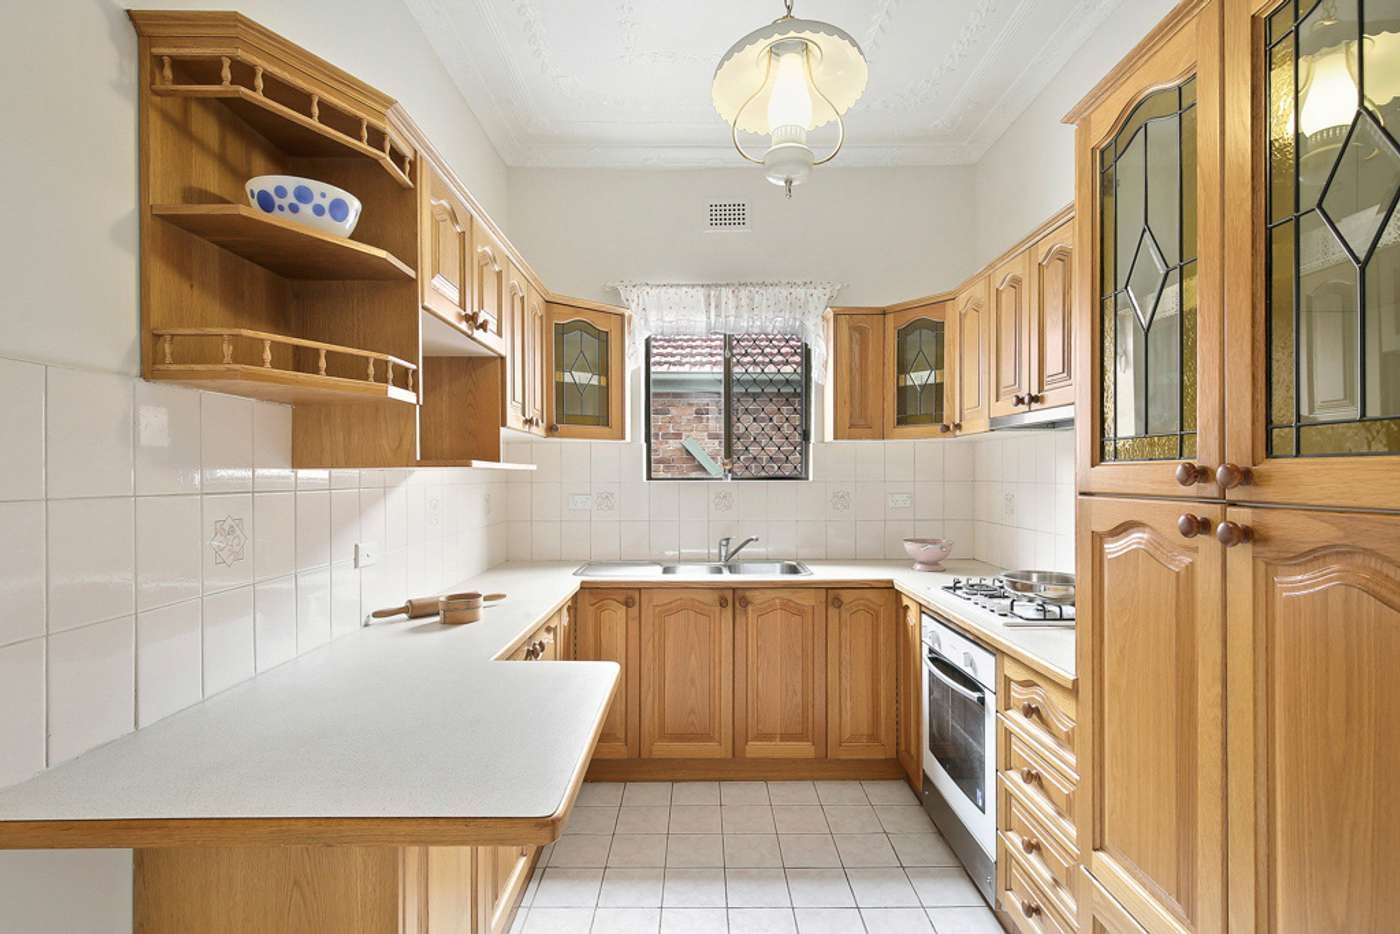 Main view of Homely house listing, 18 Franklyn Street, Concord NSW 2137